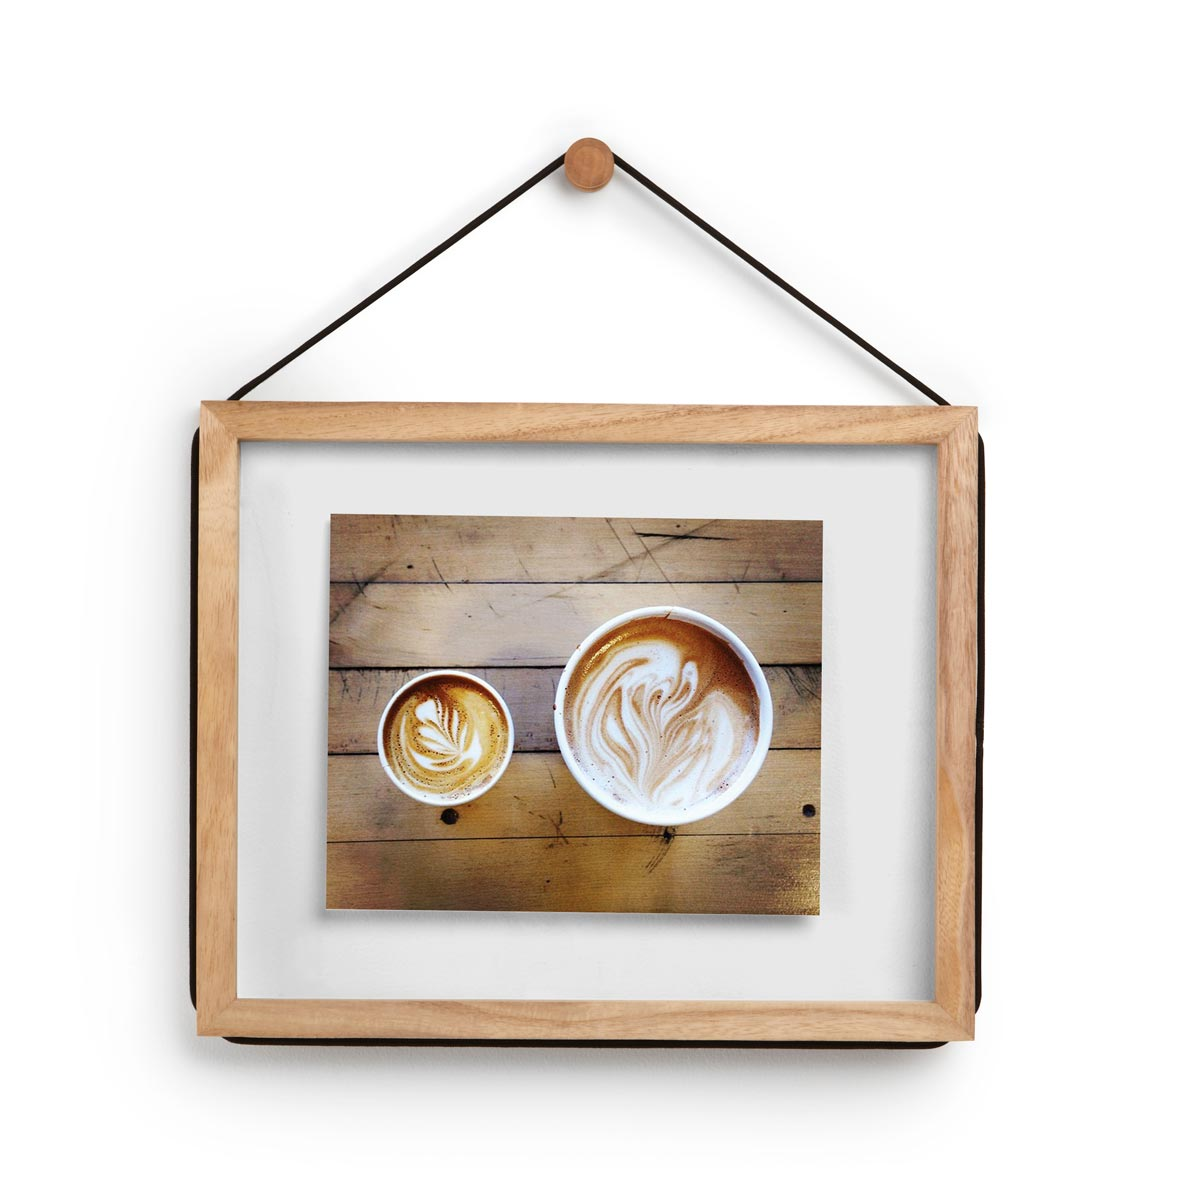 Corda 11x14 Wall Frame (Natural)   Modern Intentions - Shop Accessories